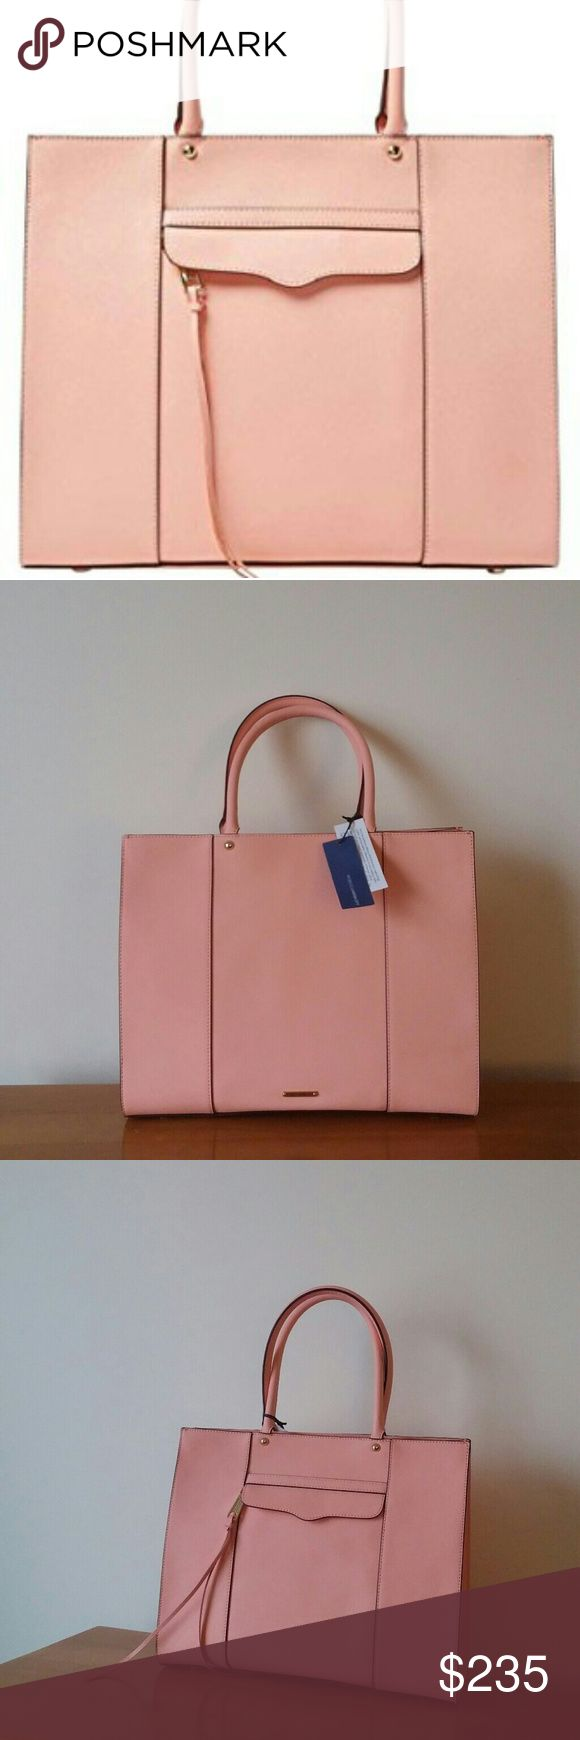 Rebecca Minkoff Large MAB tote in dark peach Gorgeous leather tote by Rebecca Minkoff in RARE dark peach color.  Color is between a pink and coral even though the stock photo makes it look baby pink.  NWT! No dustbag. Still has the paper inside from when I bought it. There is a tiny blemish on the back corner (see photo).  Such a great pop of color for work, school, or date night! Rebecca Minkoff Bags Totes